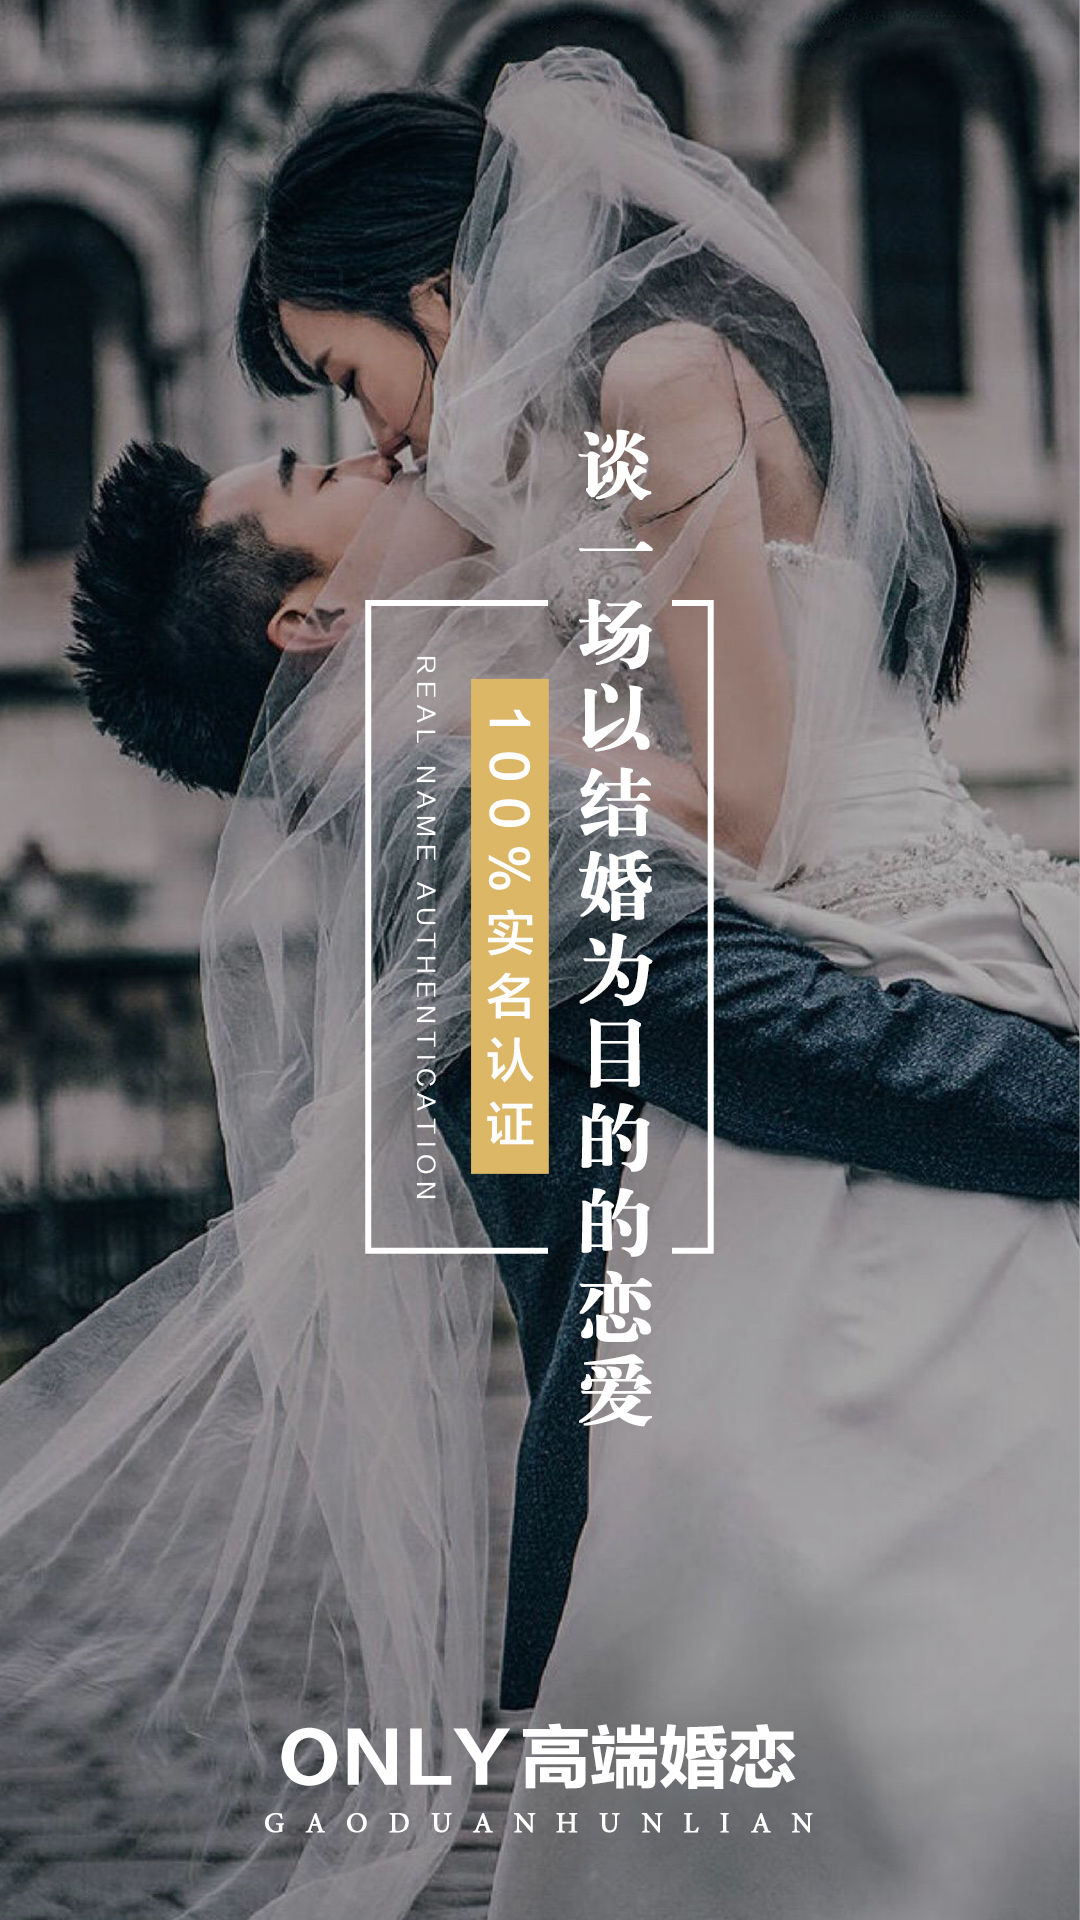 Only婚恋交友-应用截图